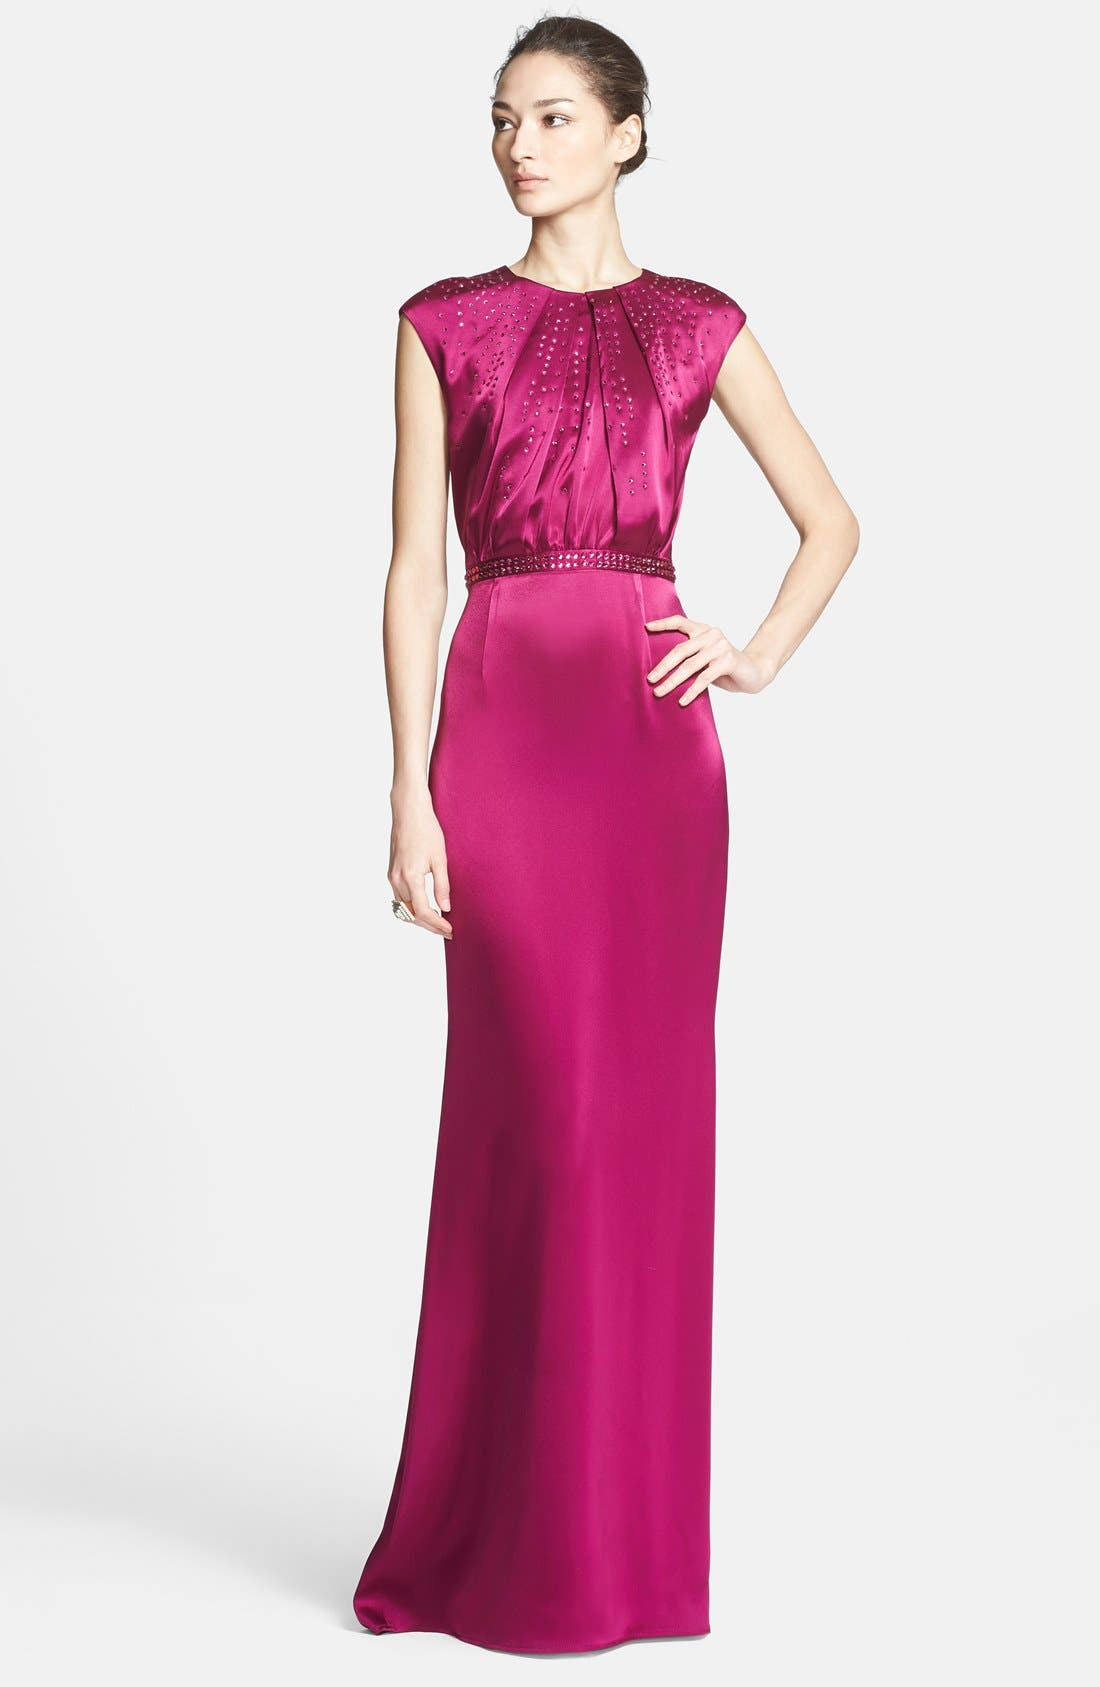 Alternate Image 1 Selected - St. John Collection Embellished Liquid Satin Gown with Train